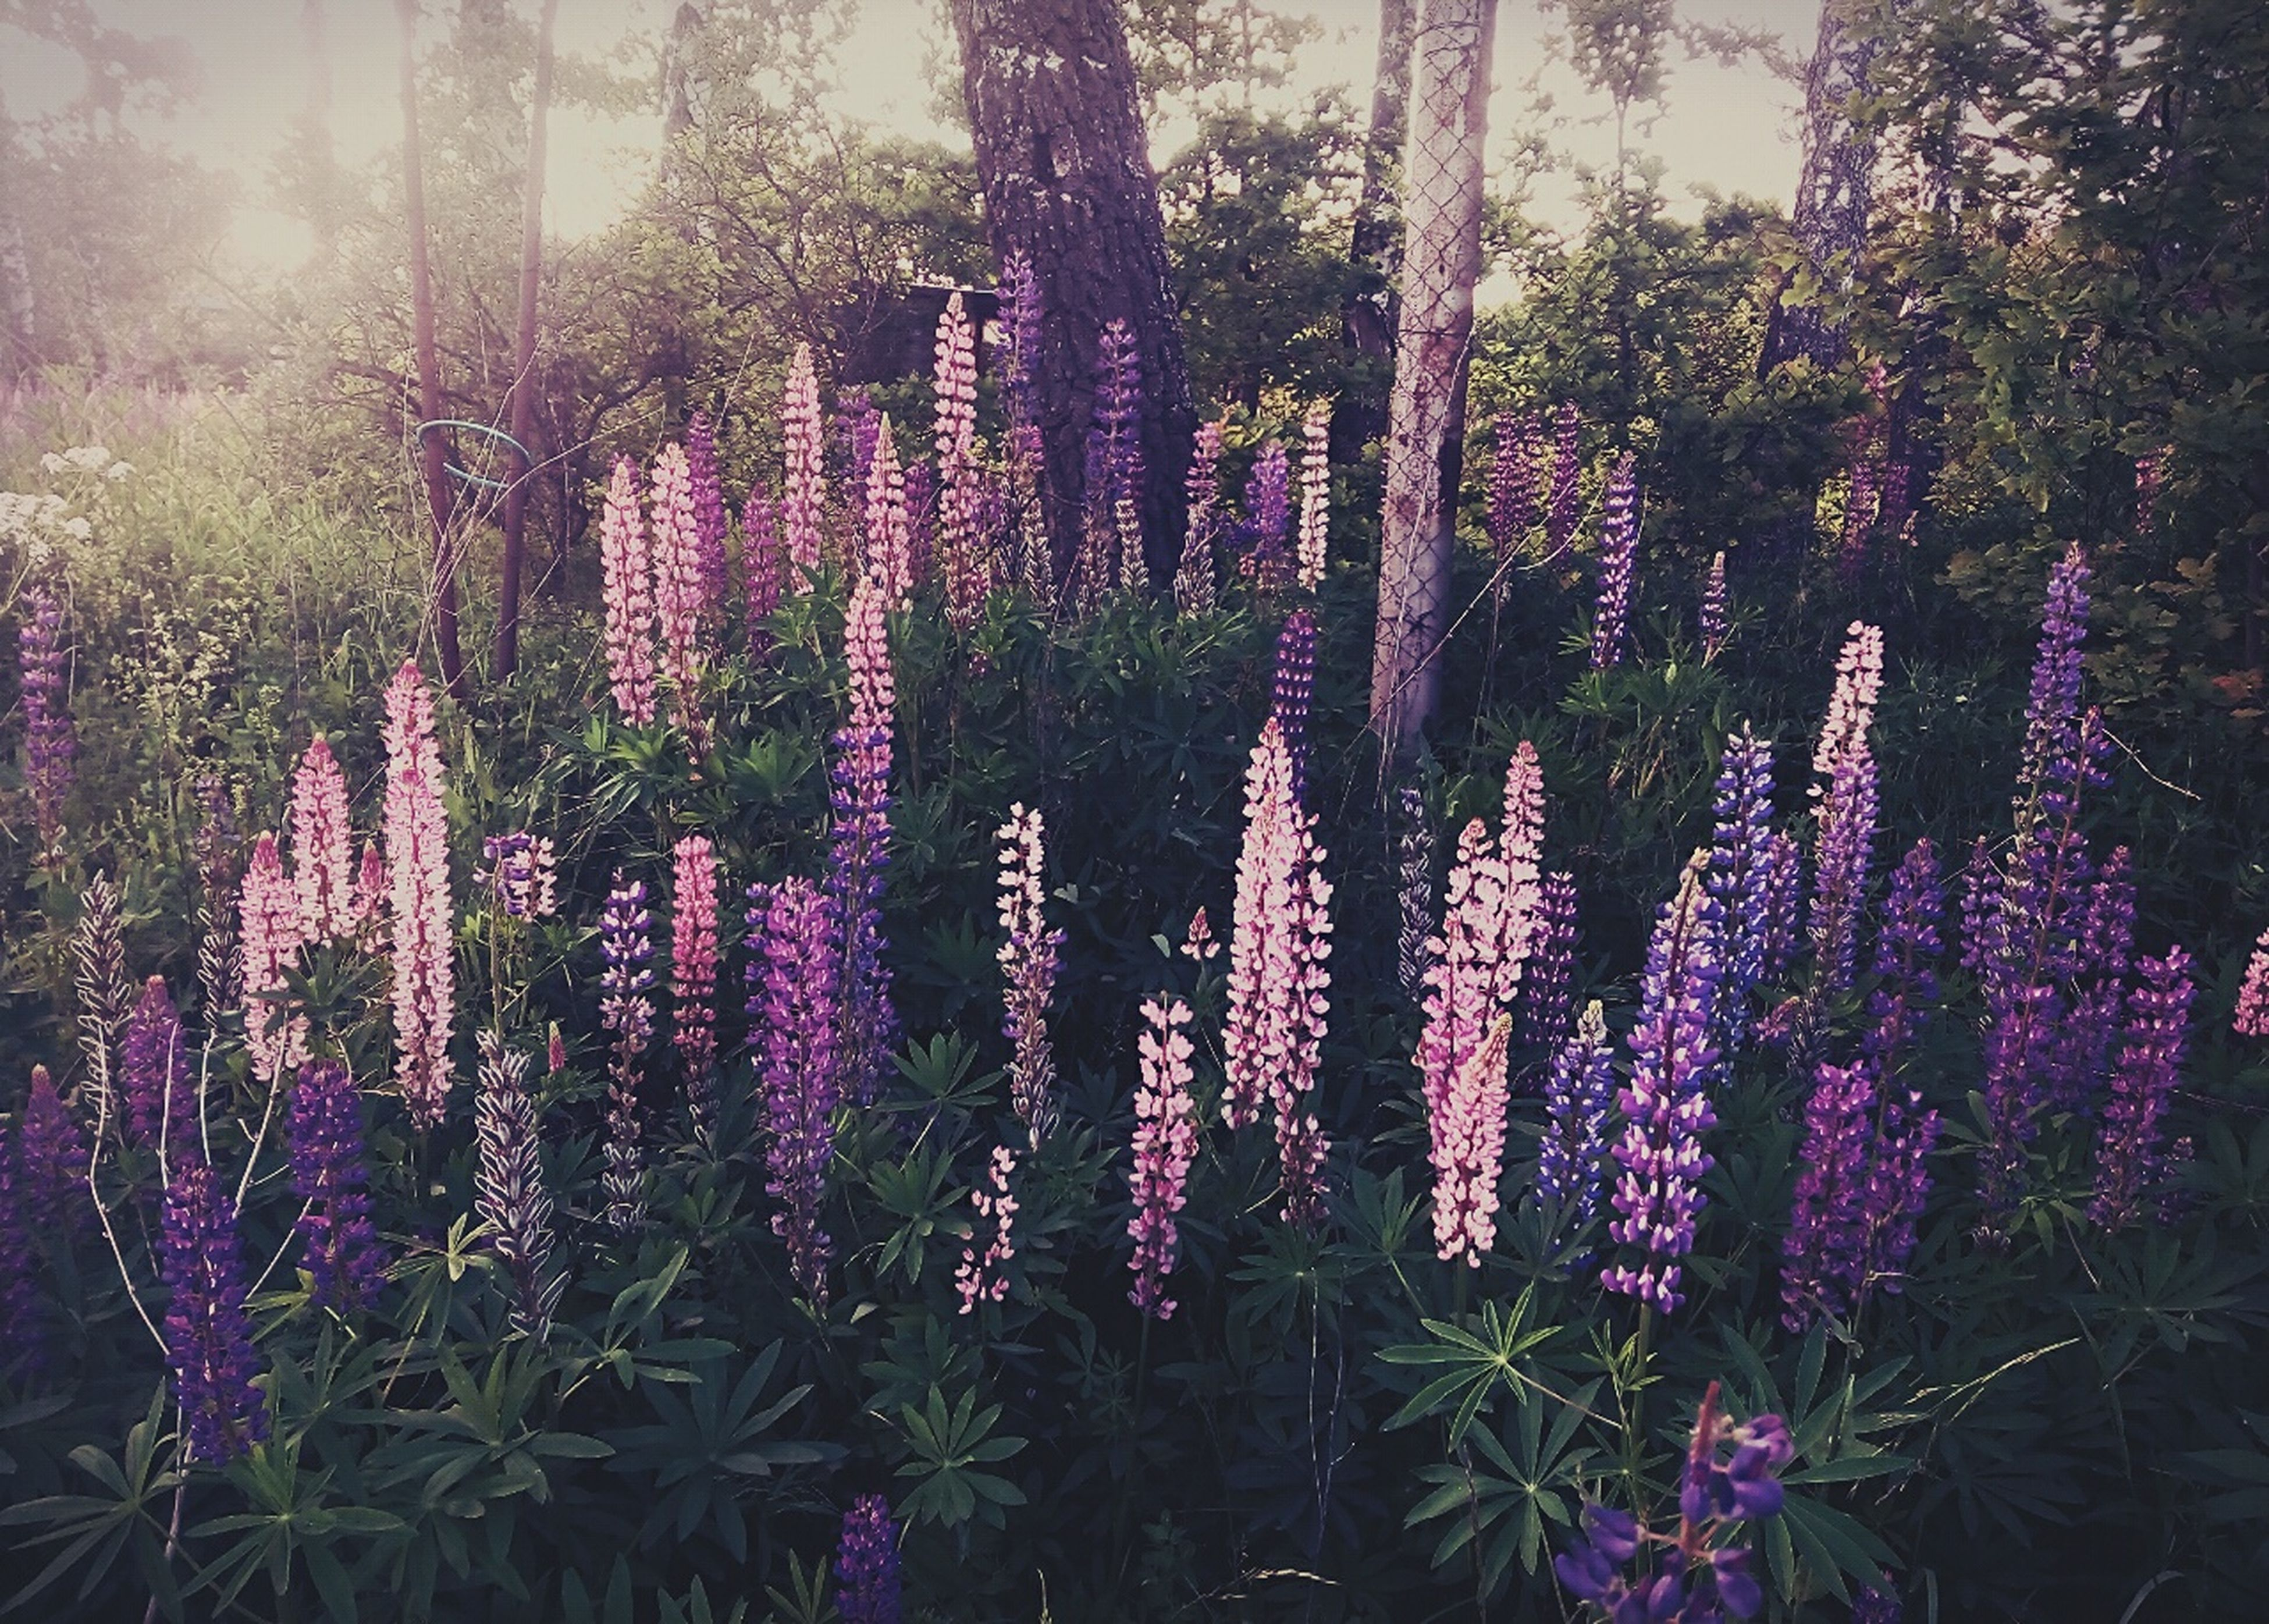 flower, purple, growth, beauty in nature, freshness, plant, nature, tree, fragility, tranquility, blooming, in bloom, tranquil scene, field, outdoors, park - man made space, no people, day, pink color, growing